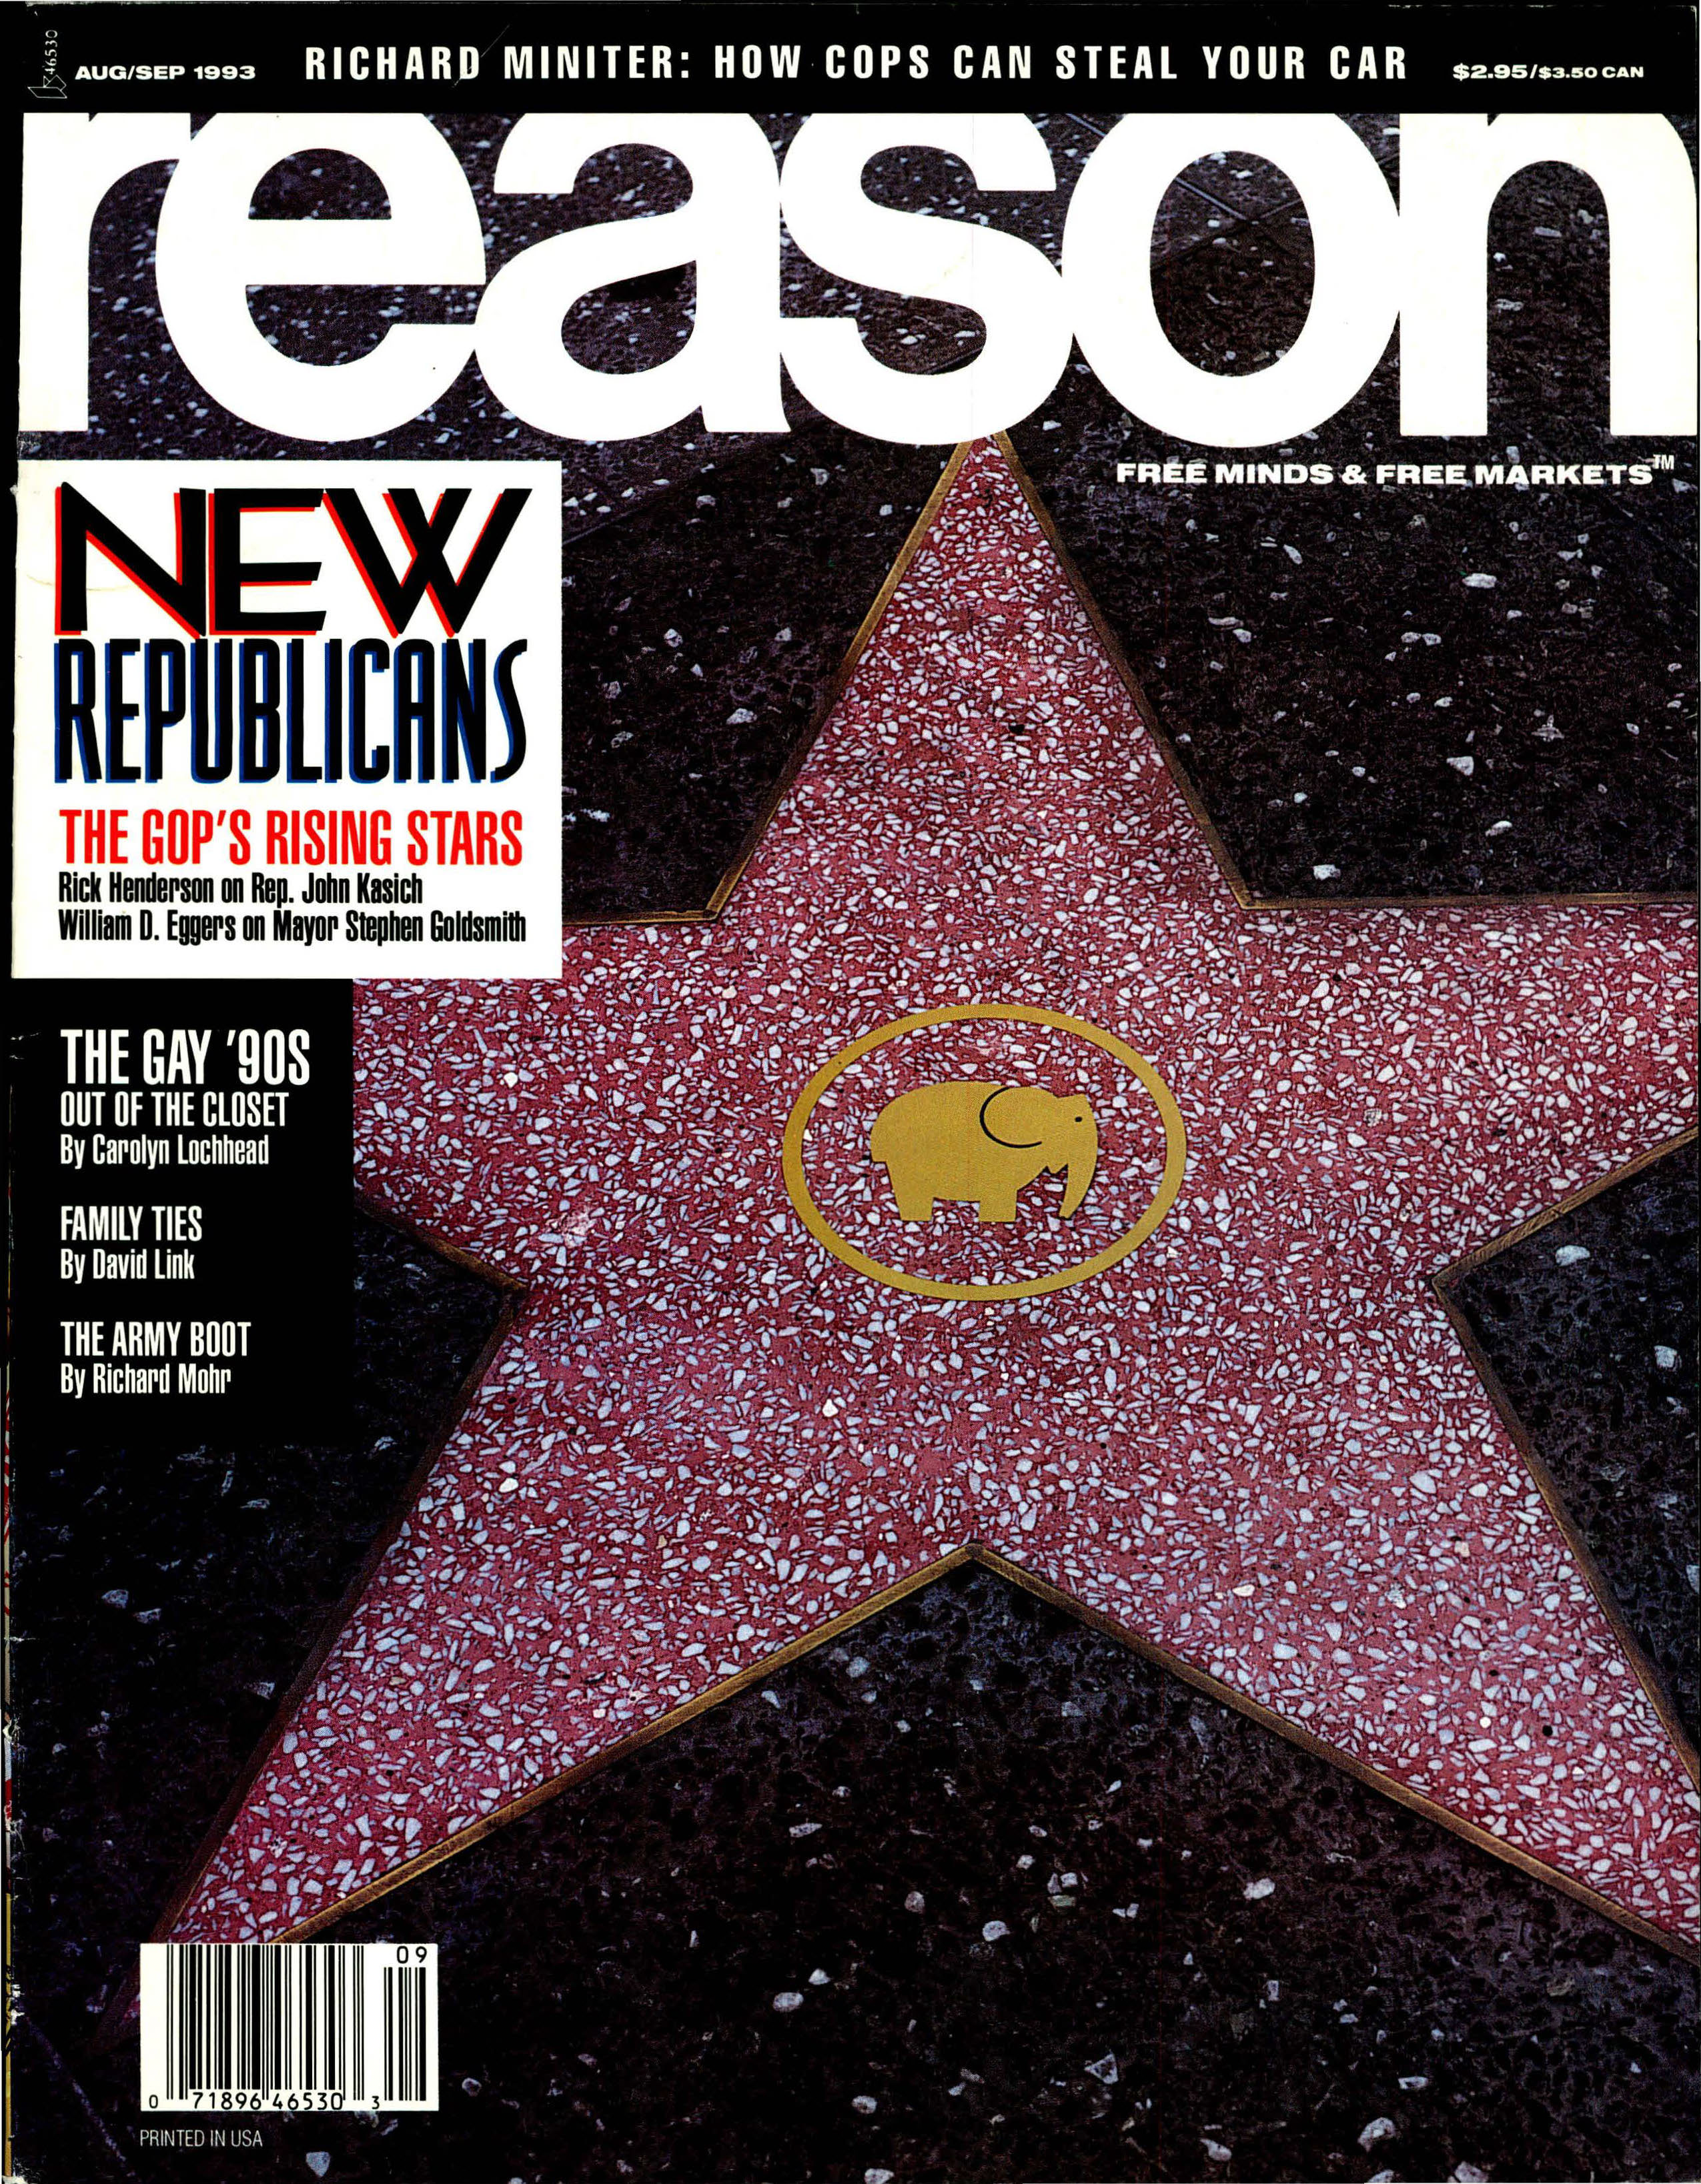 Reason Magazine, August/September 1993 cover image